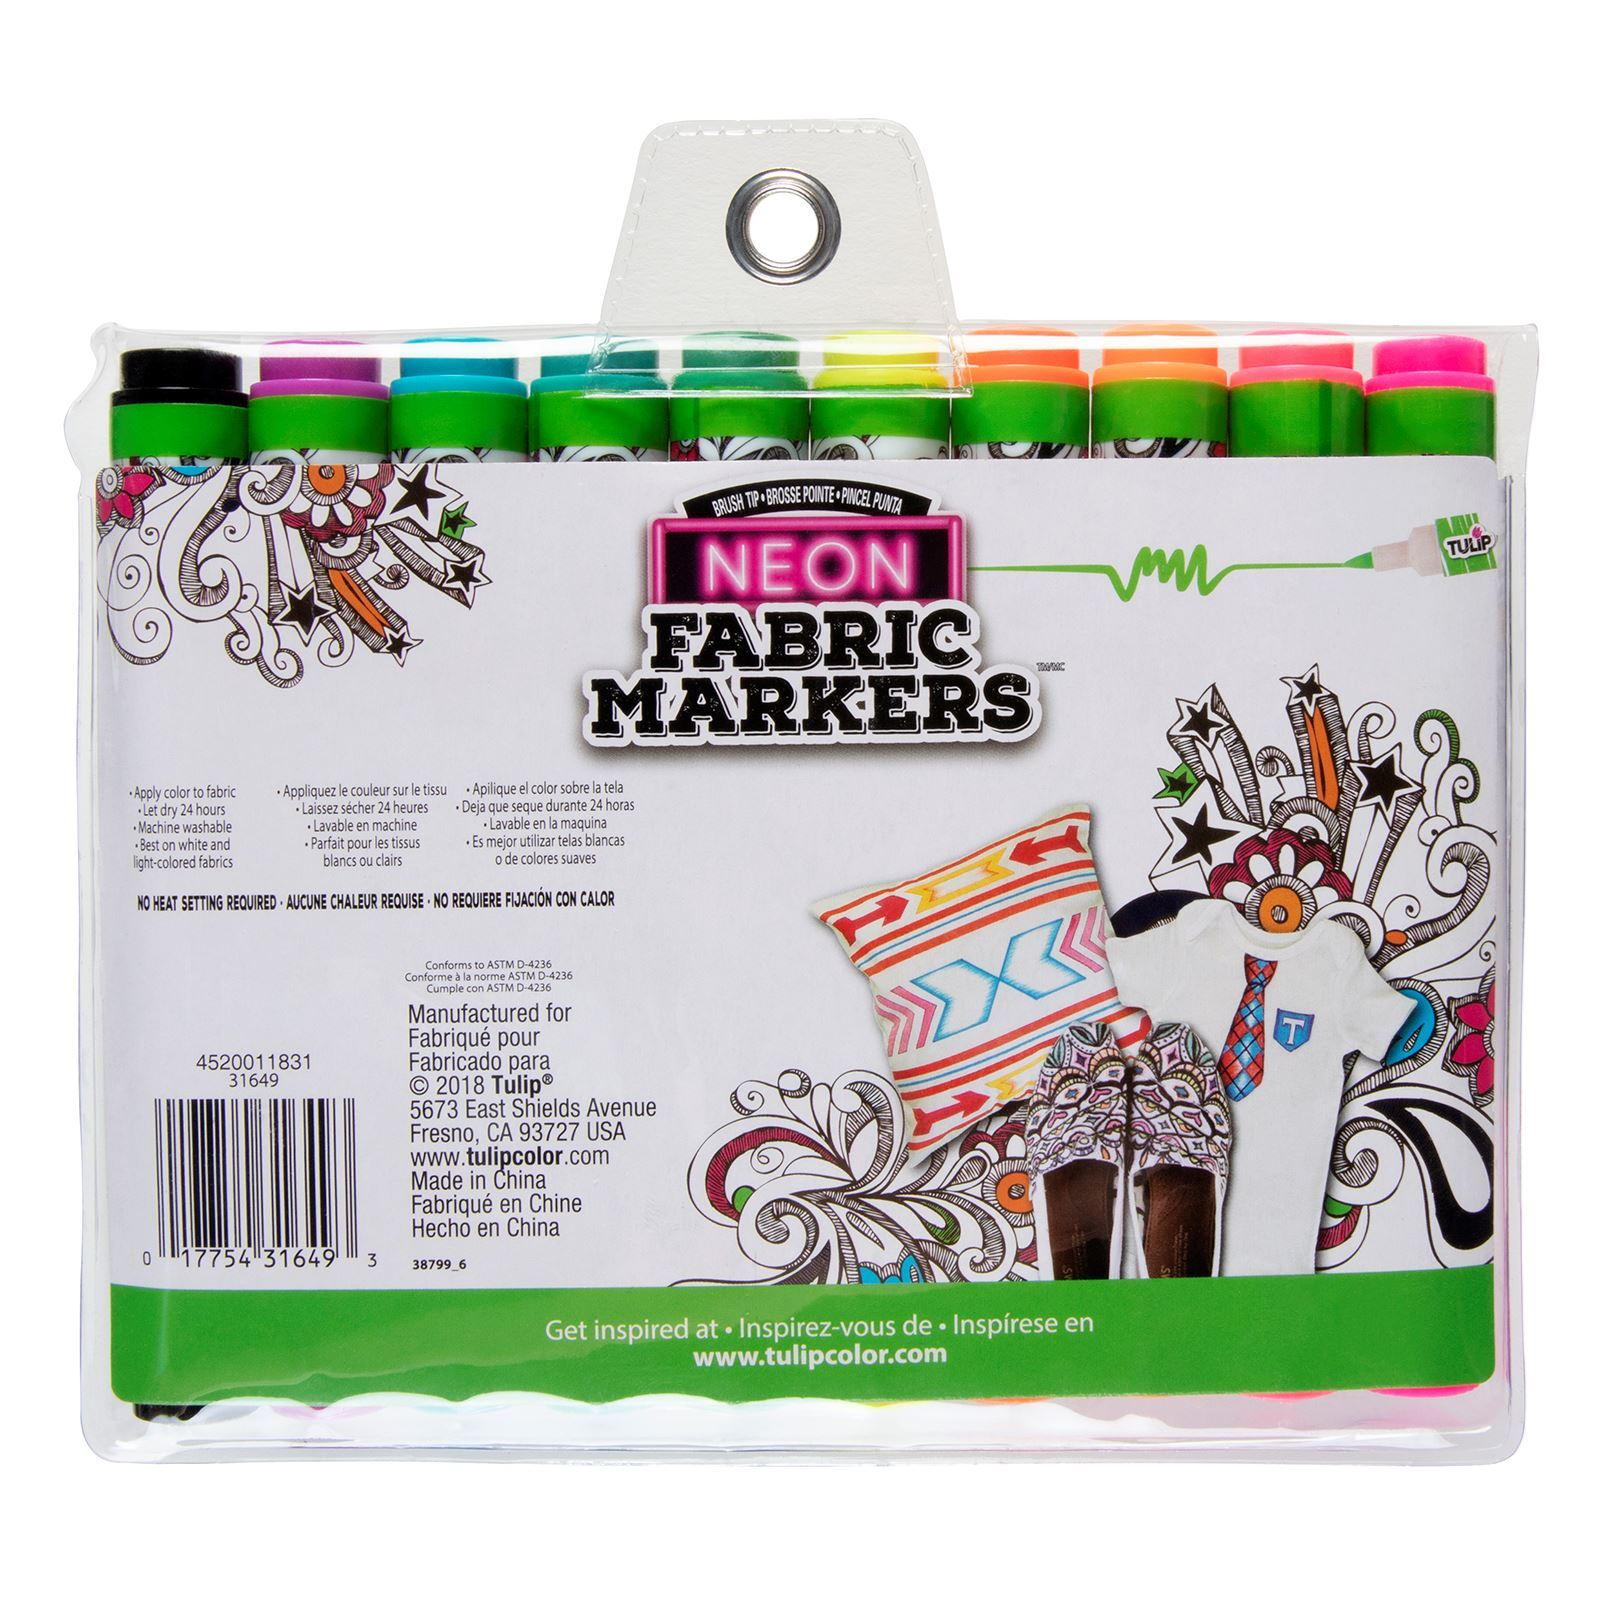 Brush Tip Neon Fabric Markers 10 Pack back of package